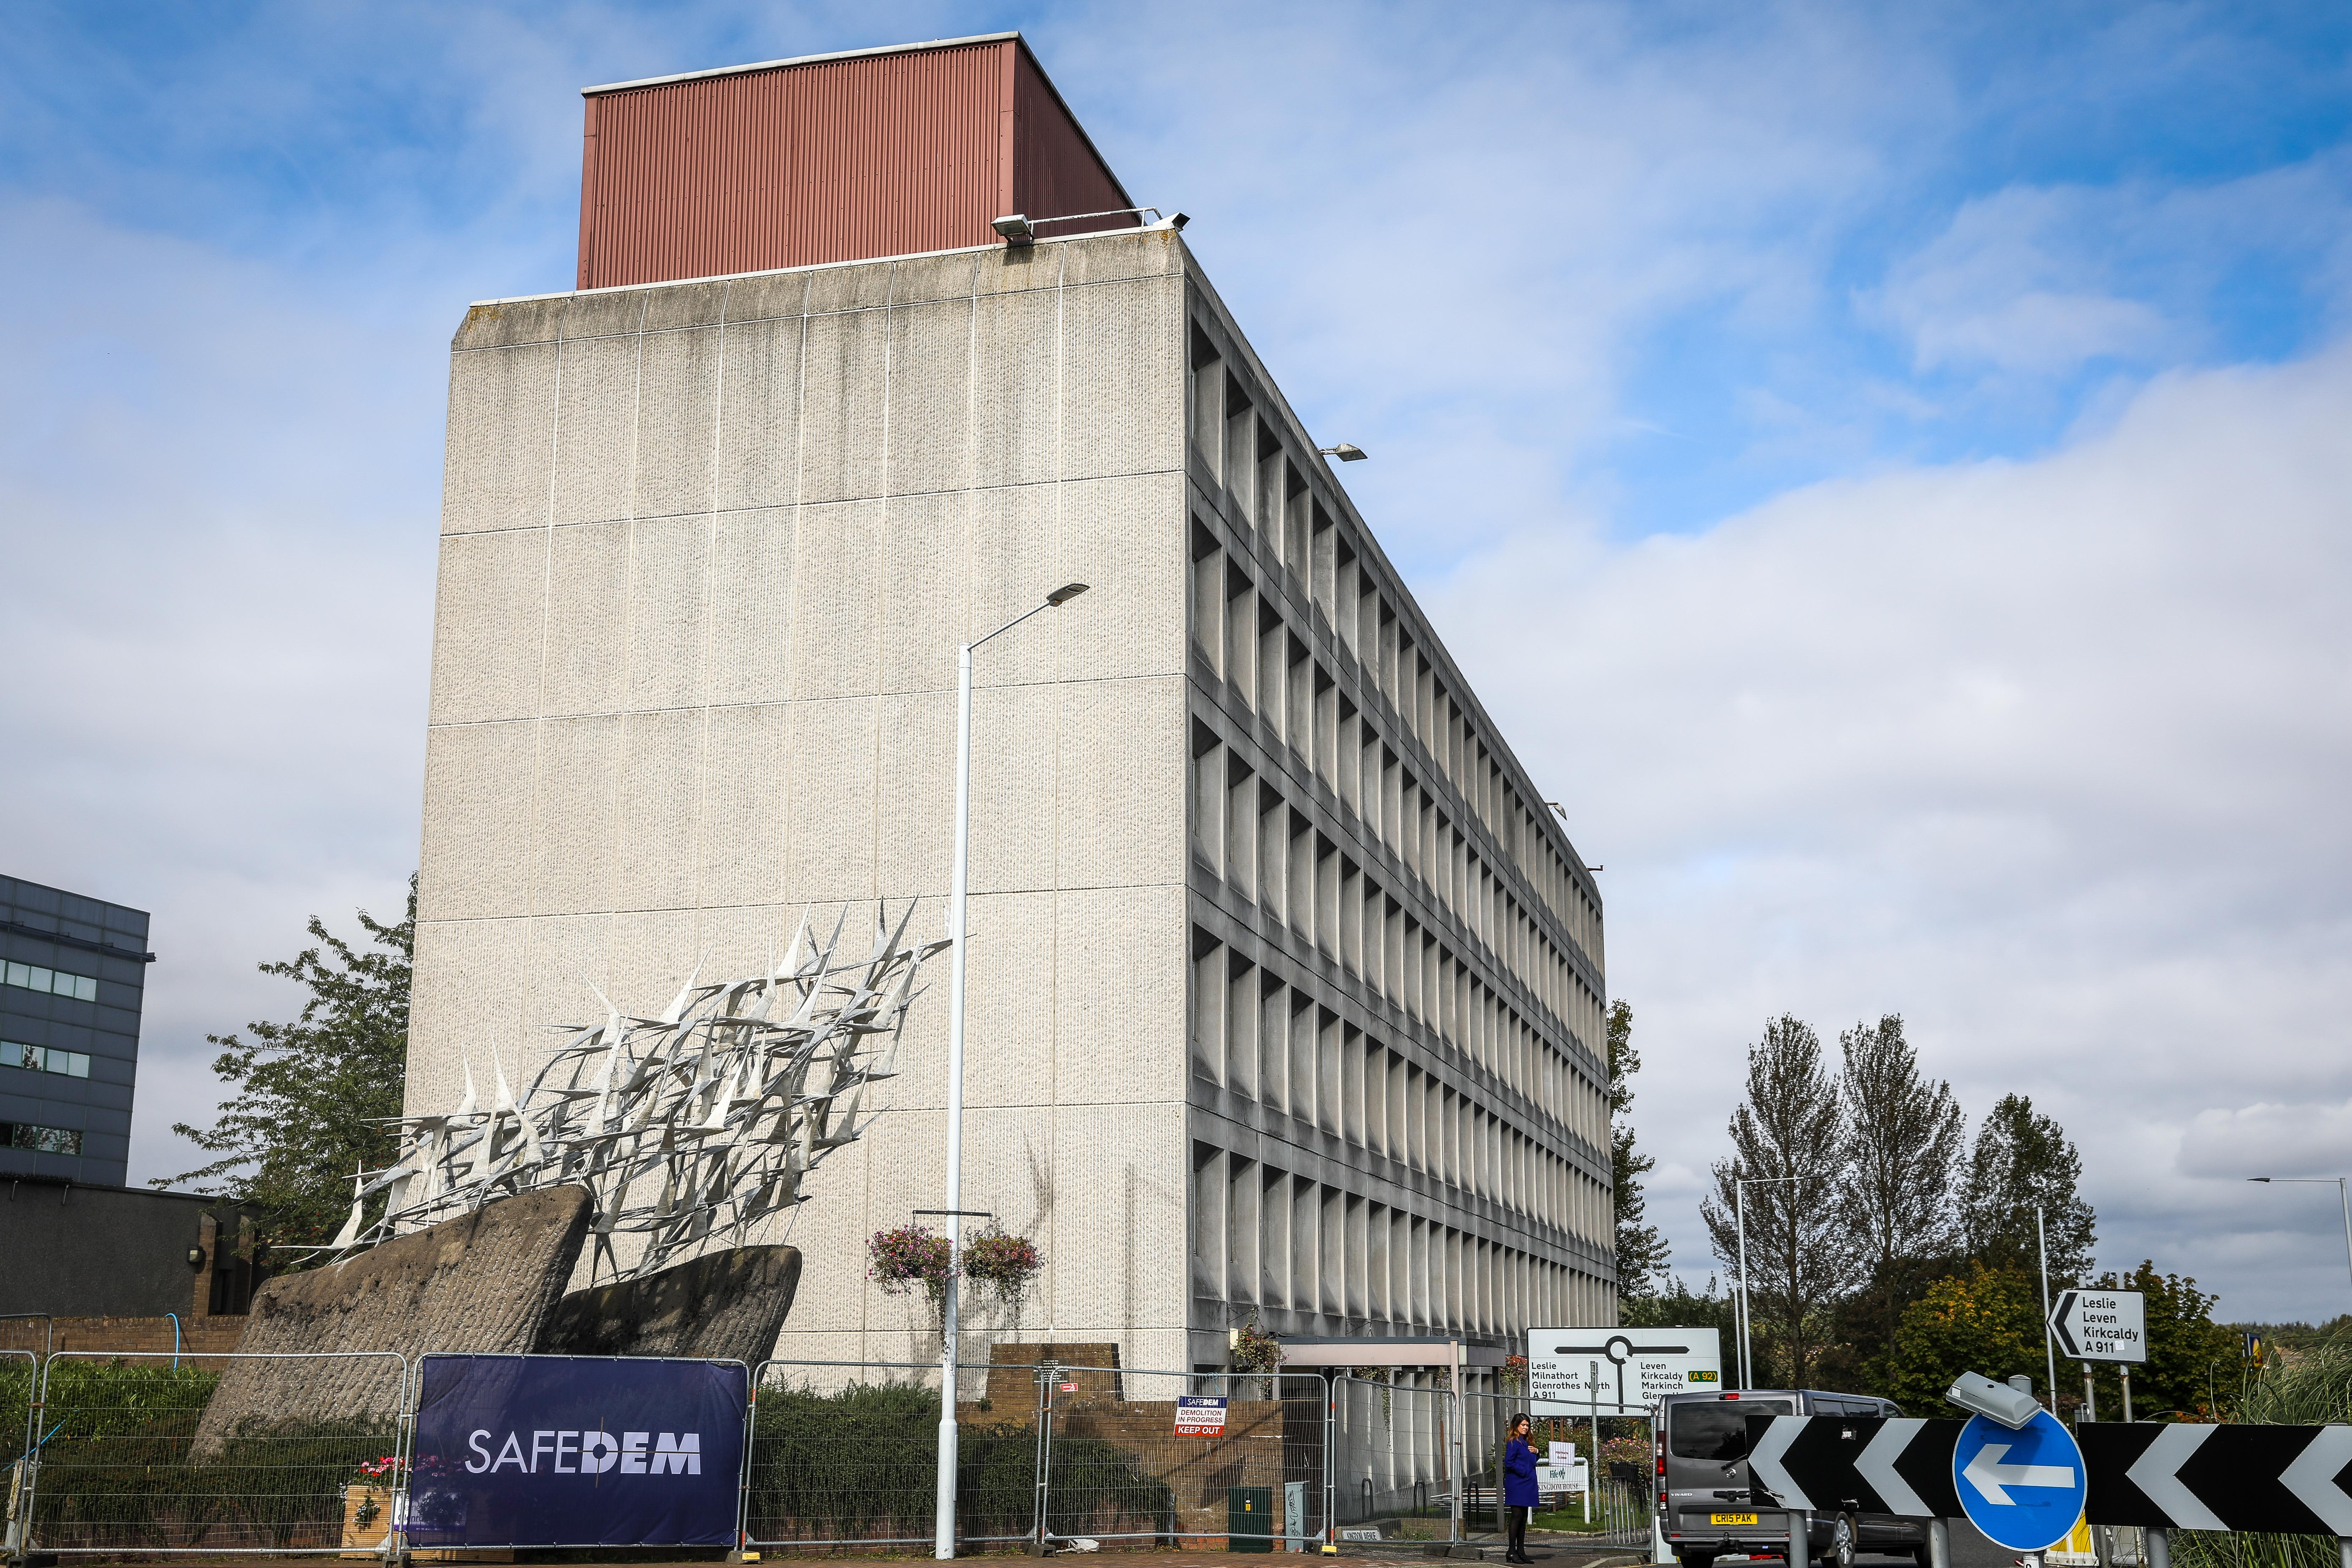 Fife Council has confirmed the prominent listed public artwork created by Malcolm Robertson in 1978 will remain in its current location following the demolition.